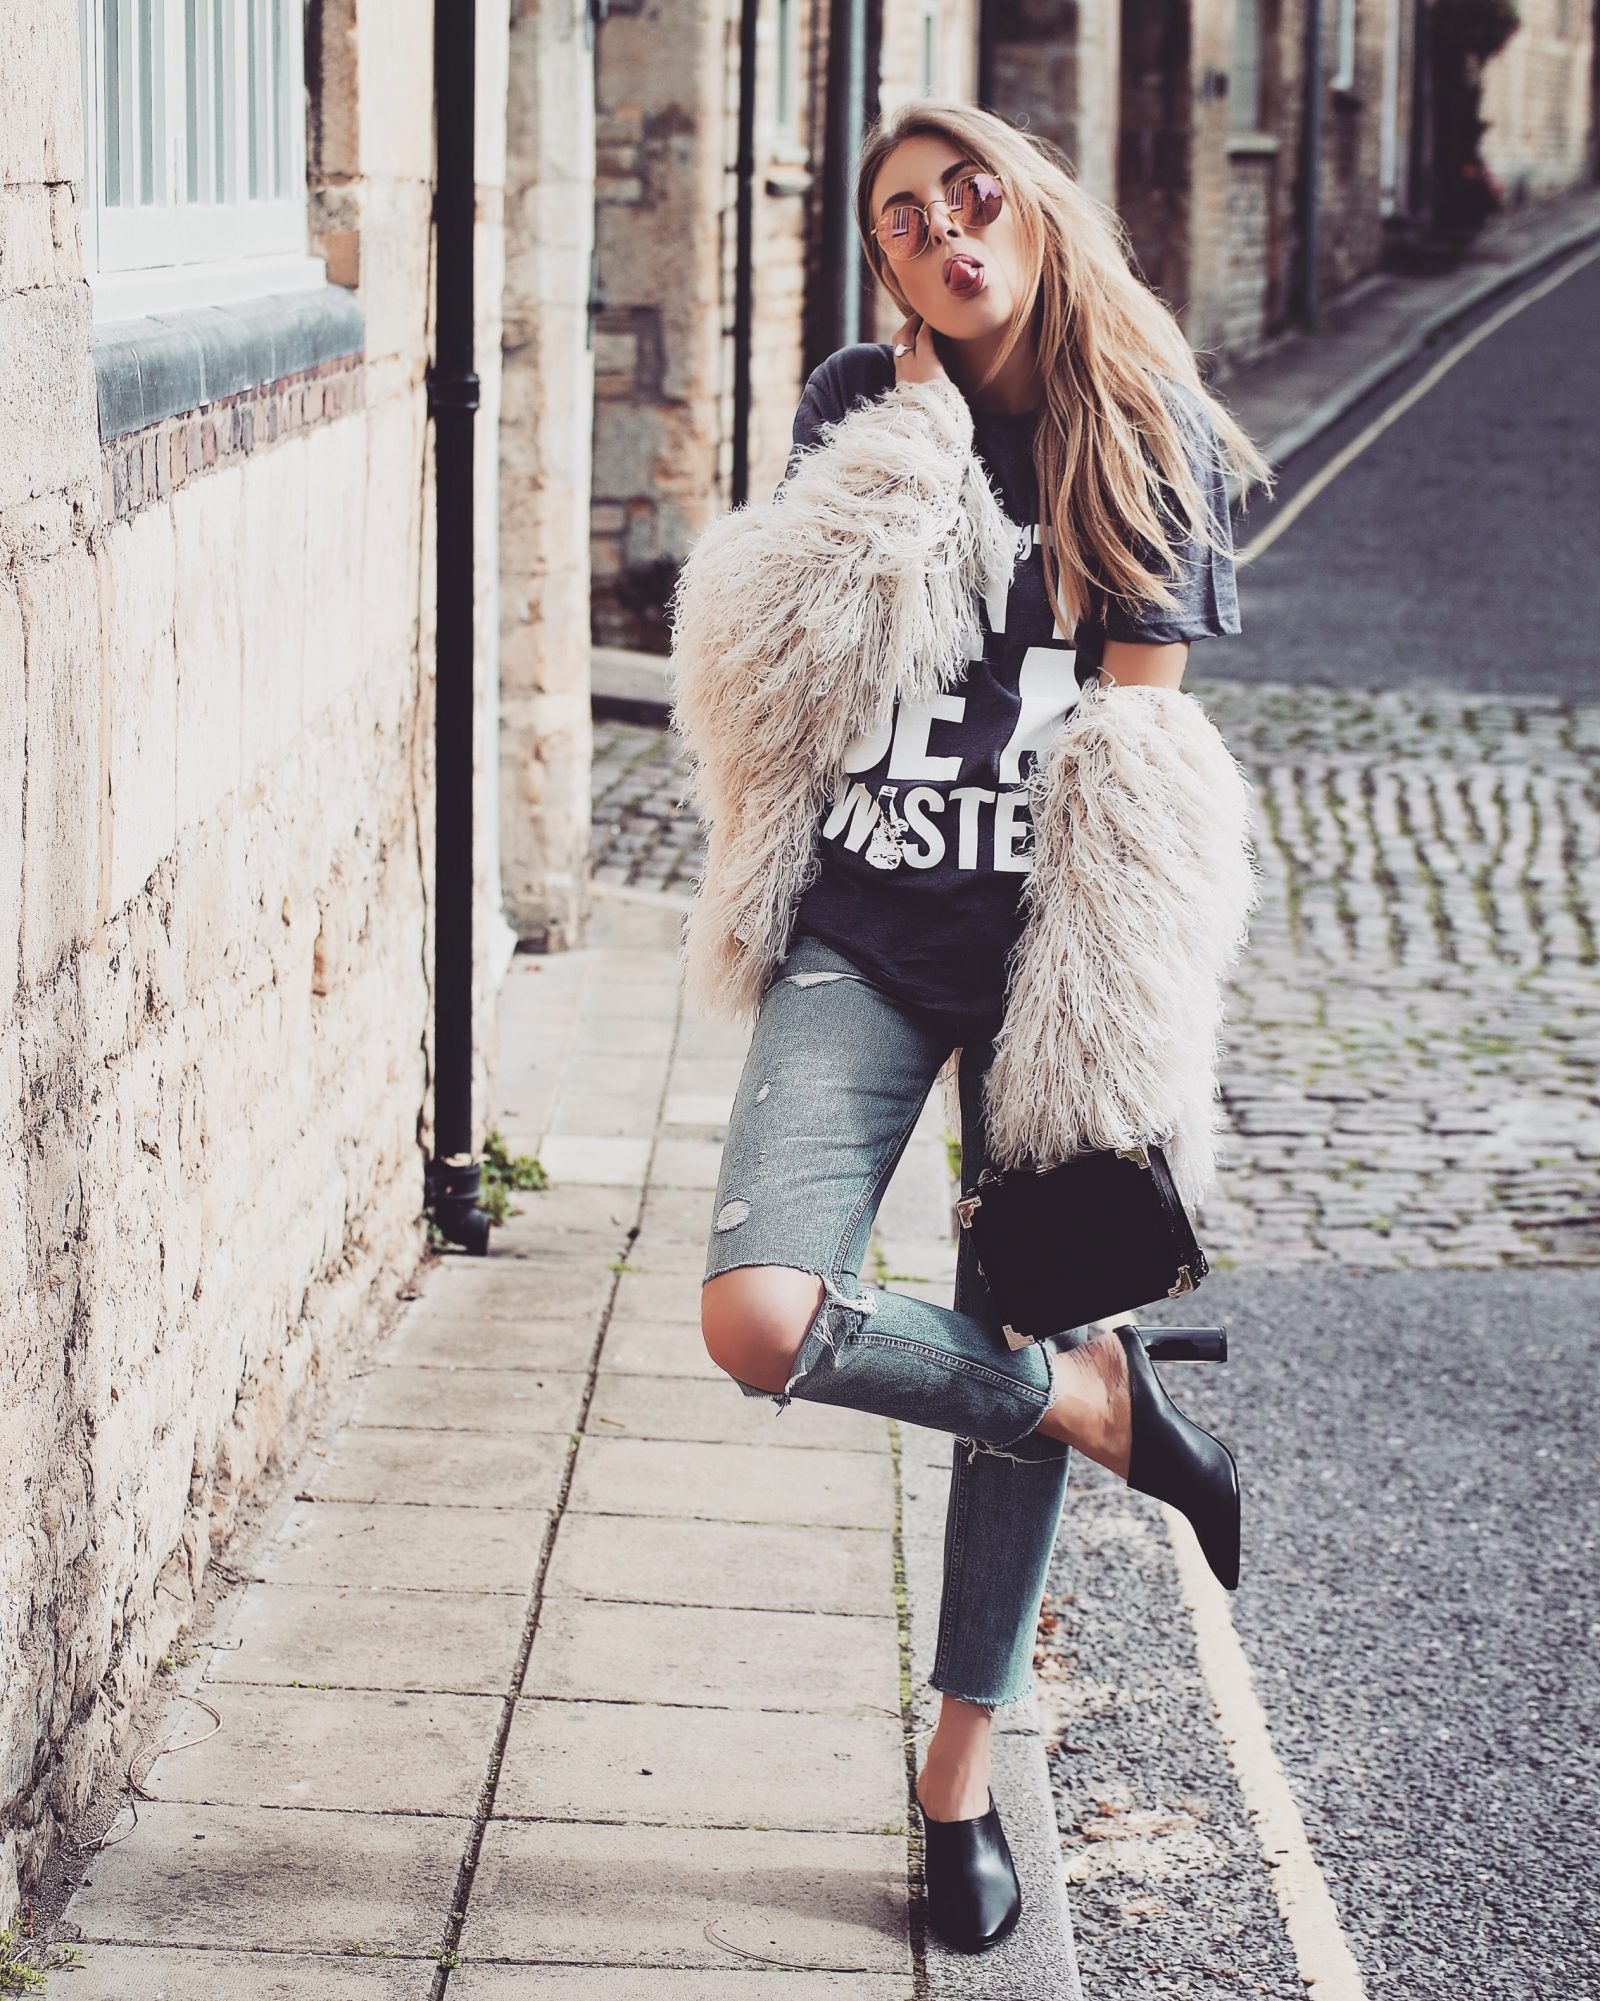 Swap For Good - Henry Holland - Fashion Blogger Outfit